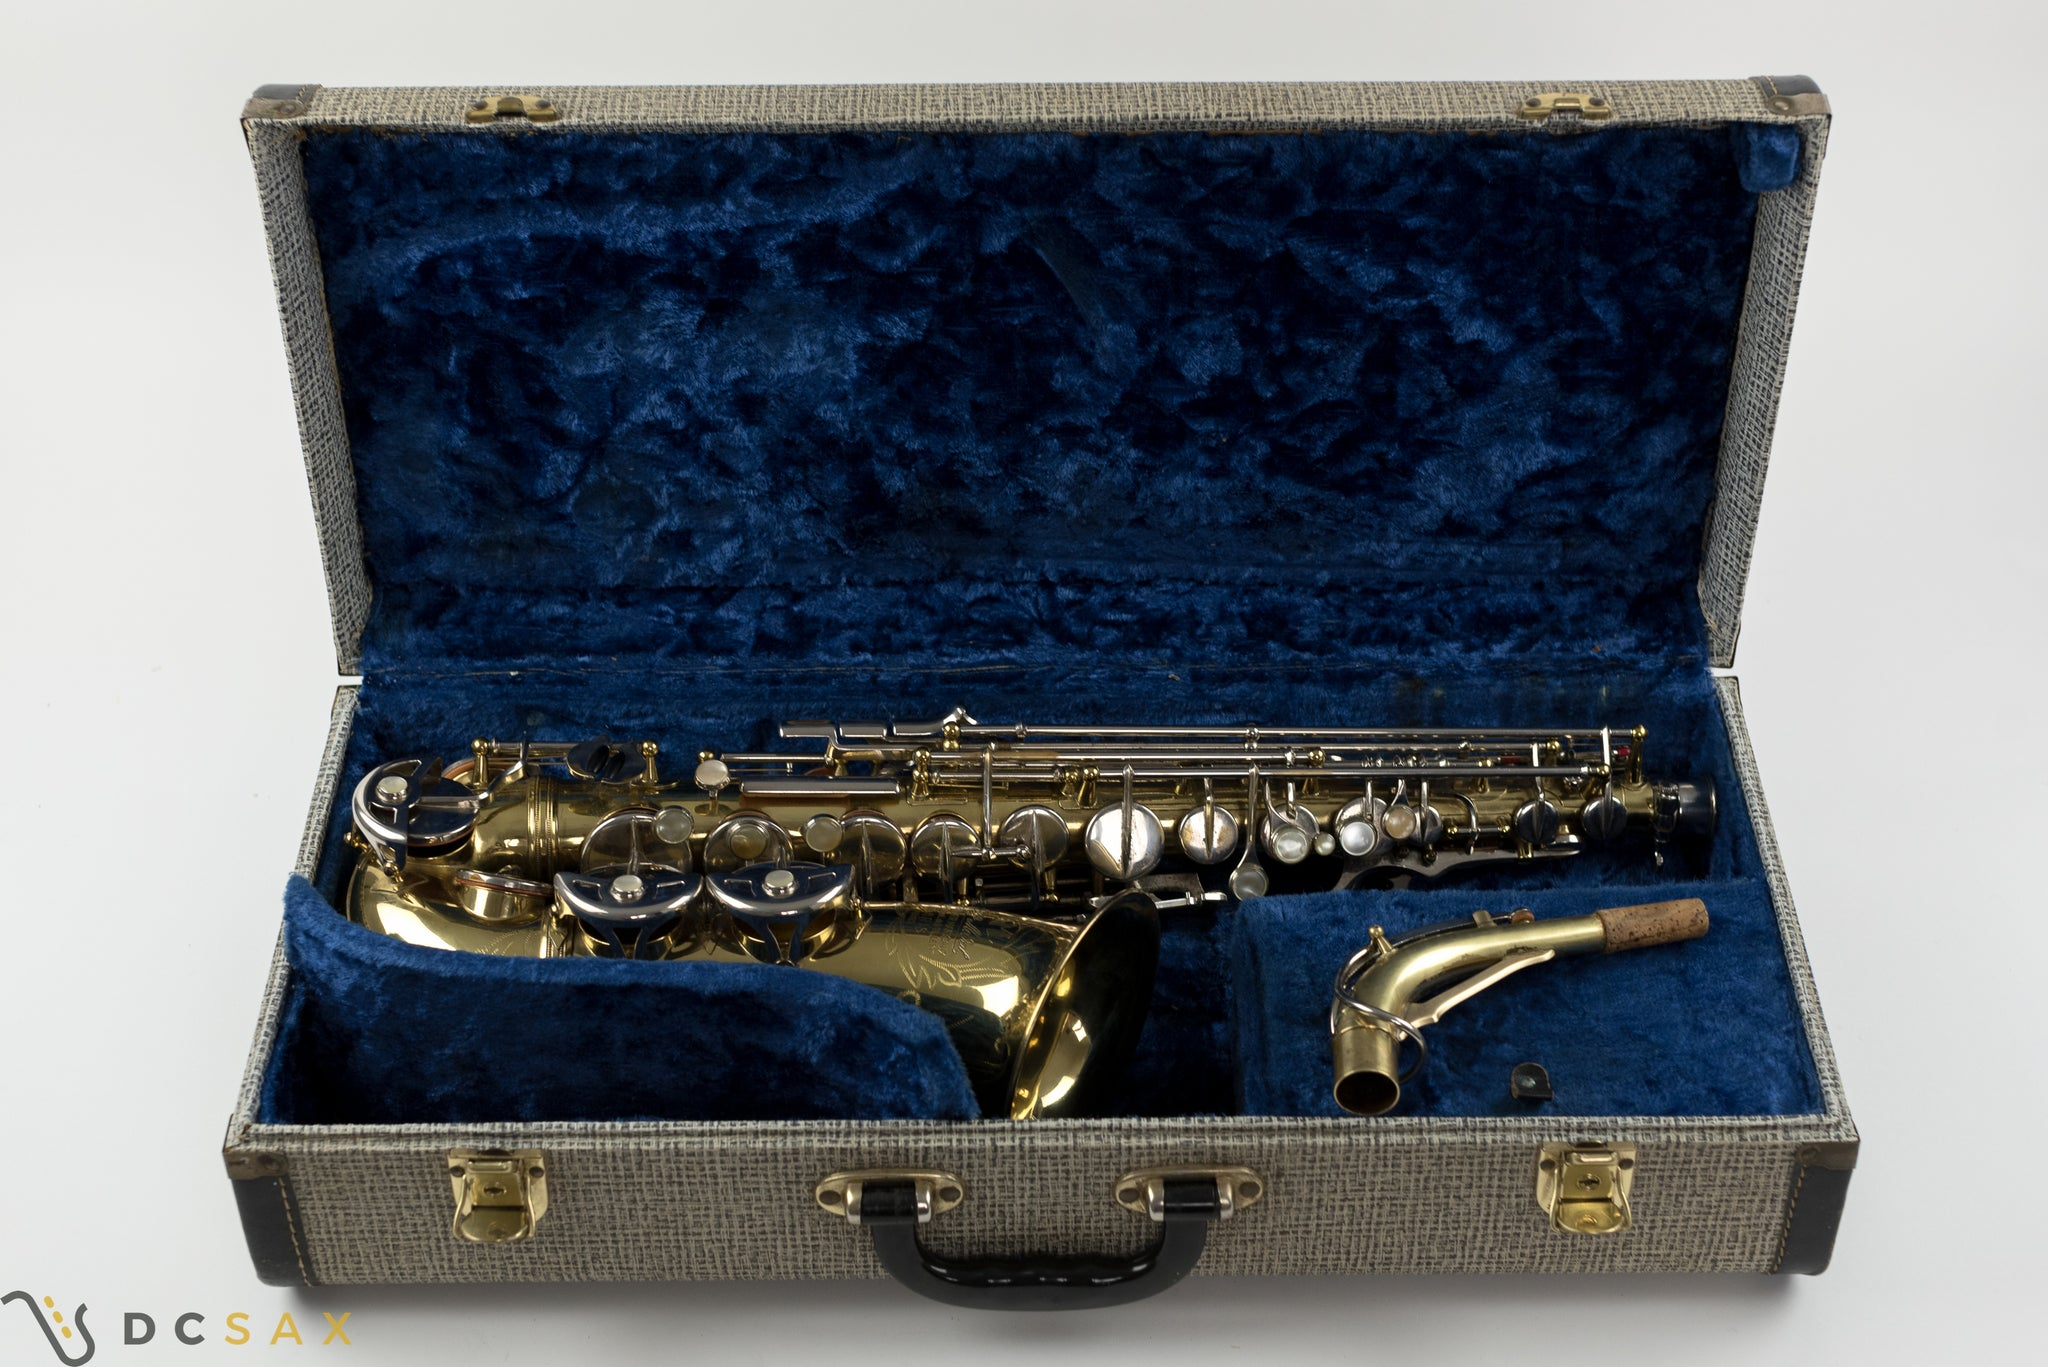 1966 SML Gold Medal I Alto Saxophone, 95% Original Lacquer, Video